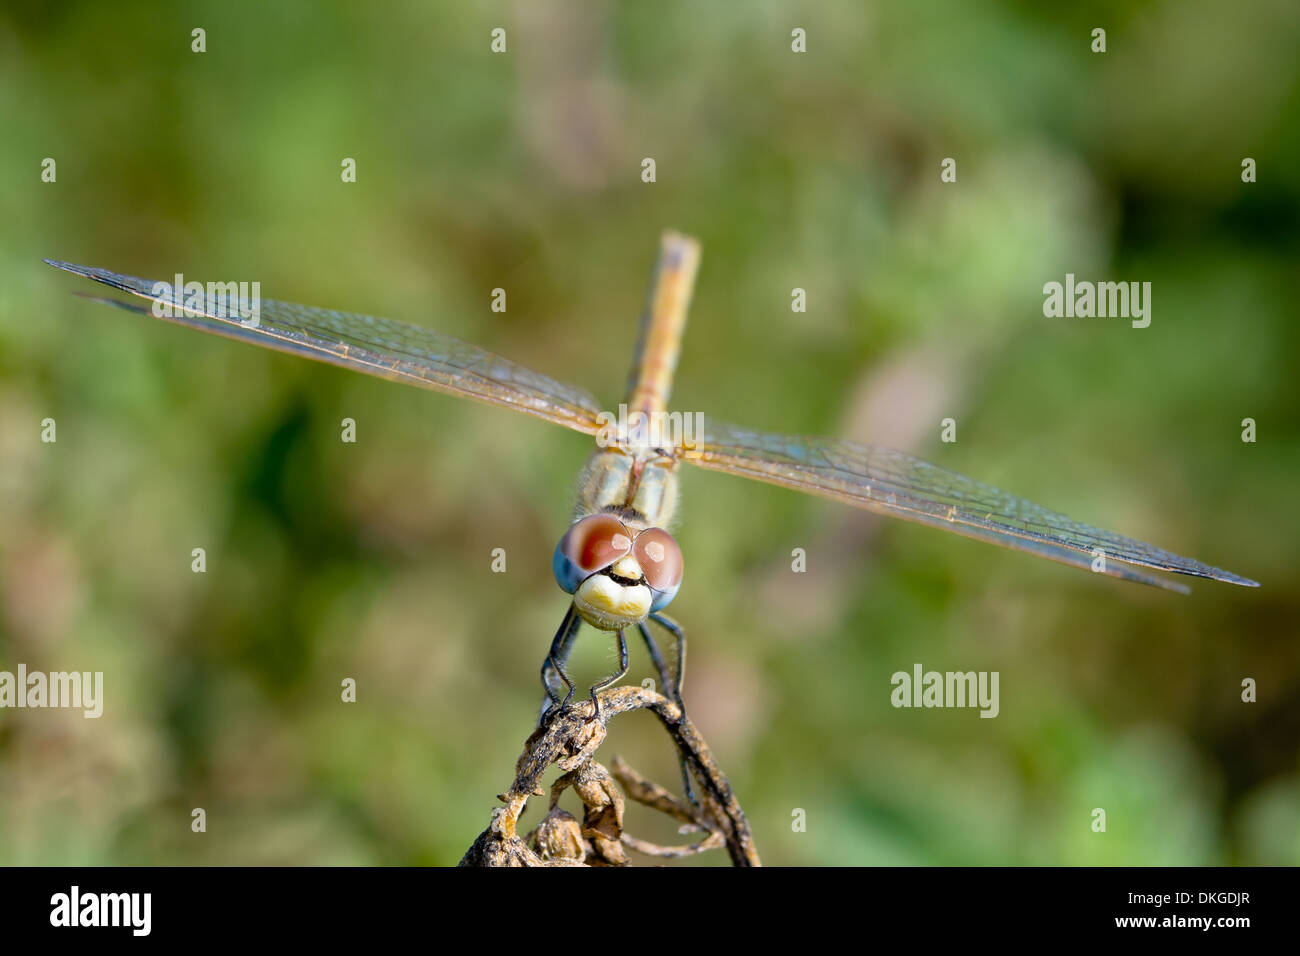 Image of a dragonfly ( sympetrum sp ) accomplished like